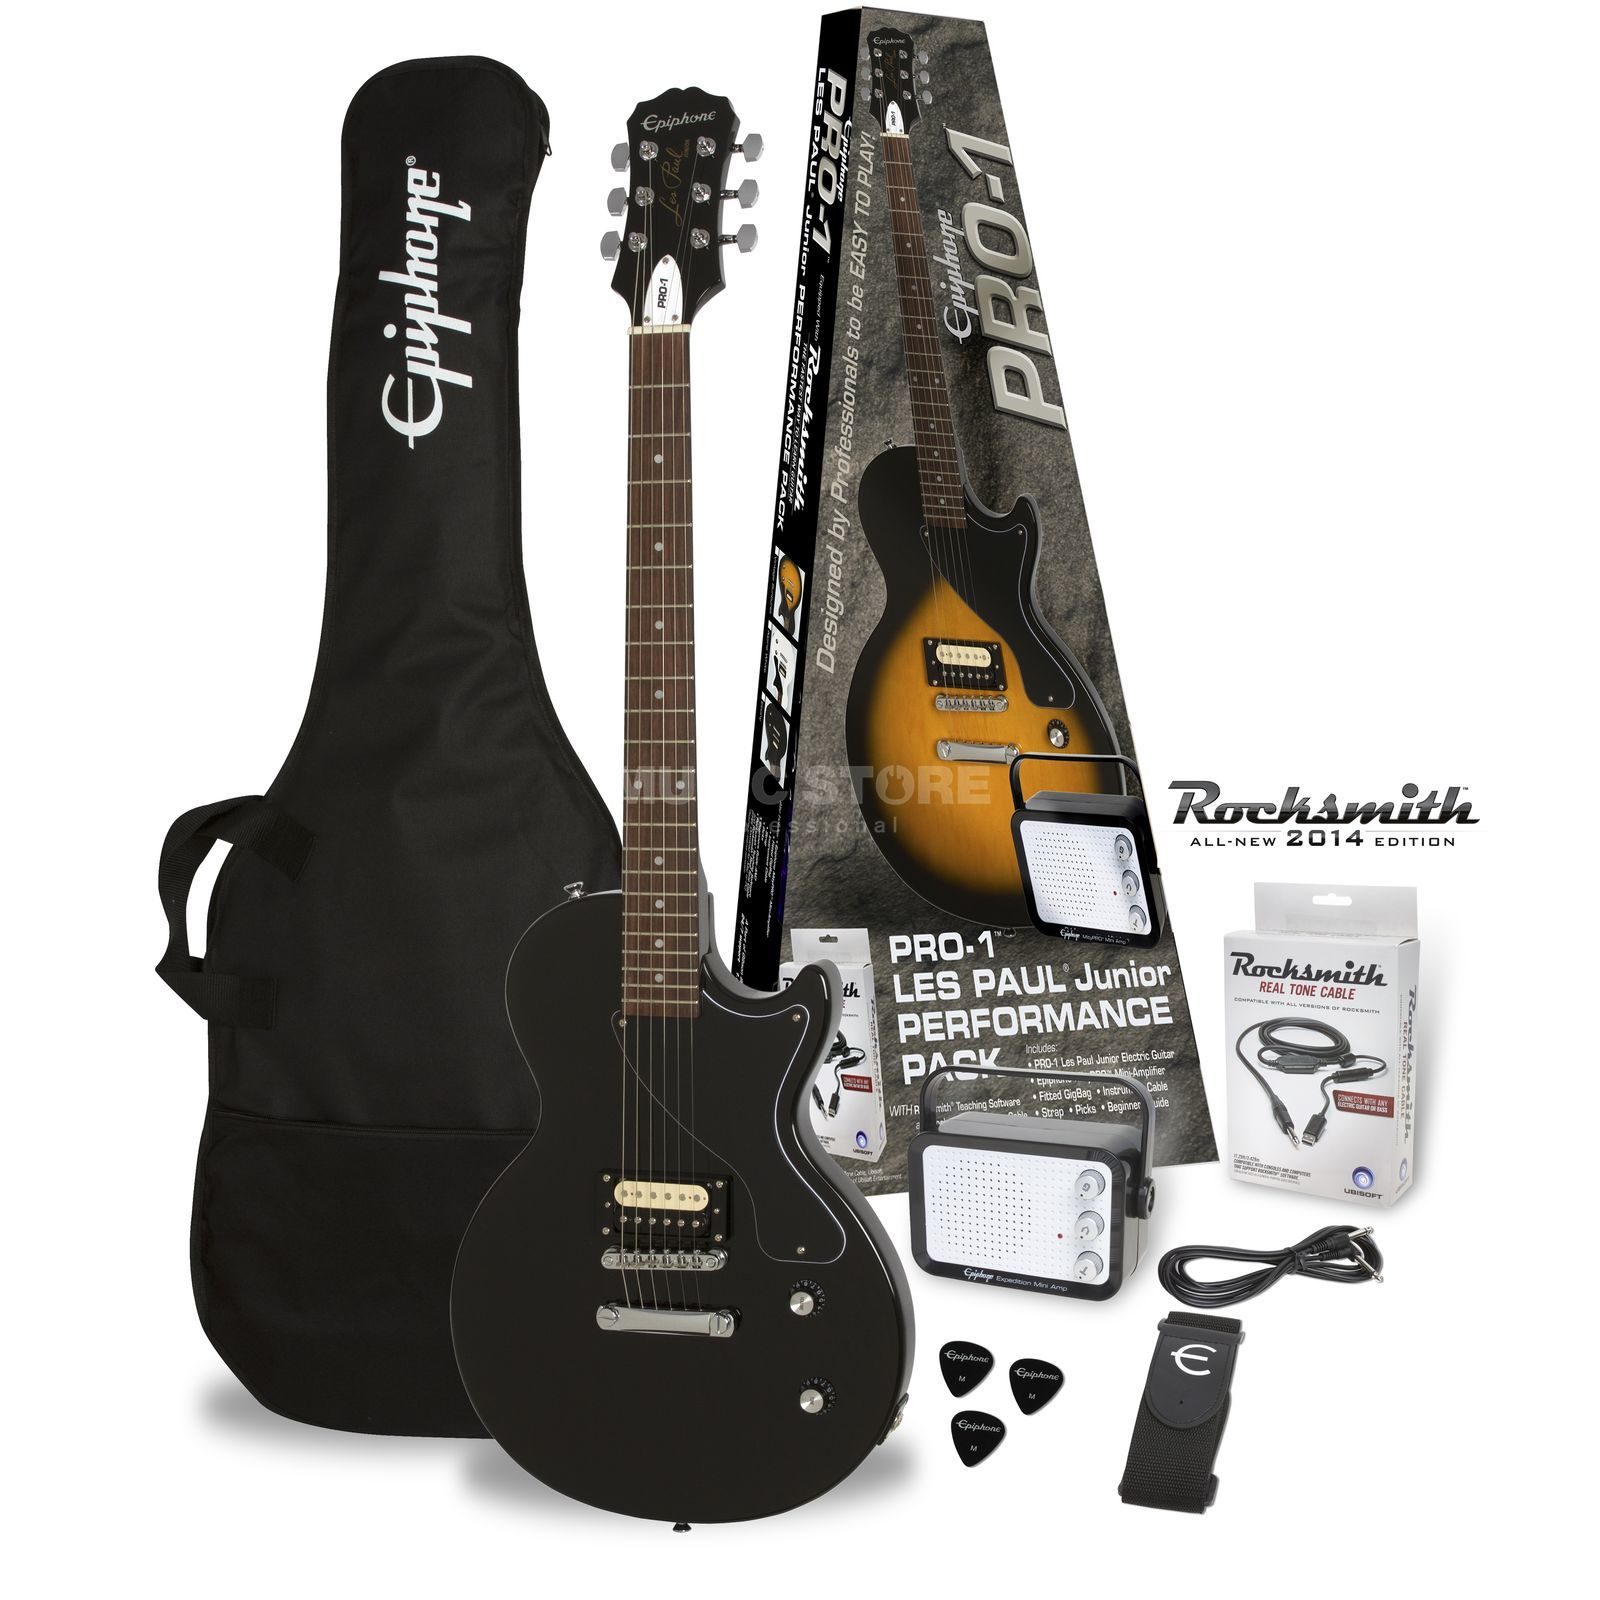 Epiphone PRO-1 Les Paul Junior Performance Pack Ebony Image du produit